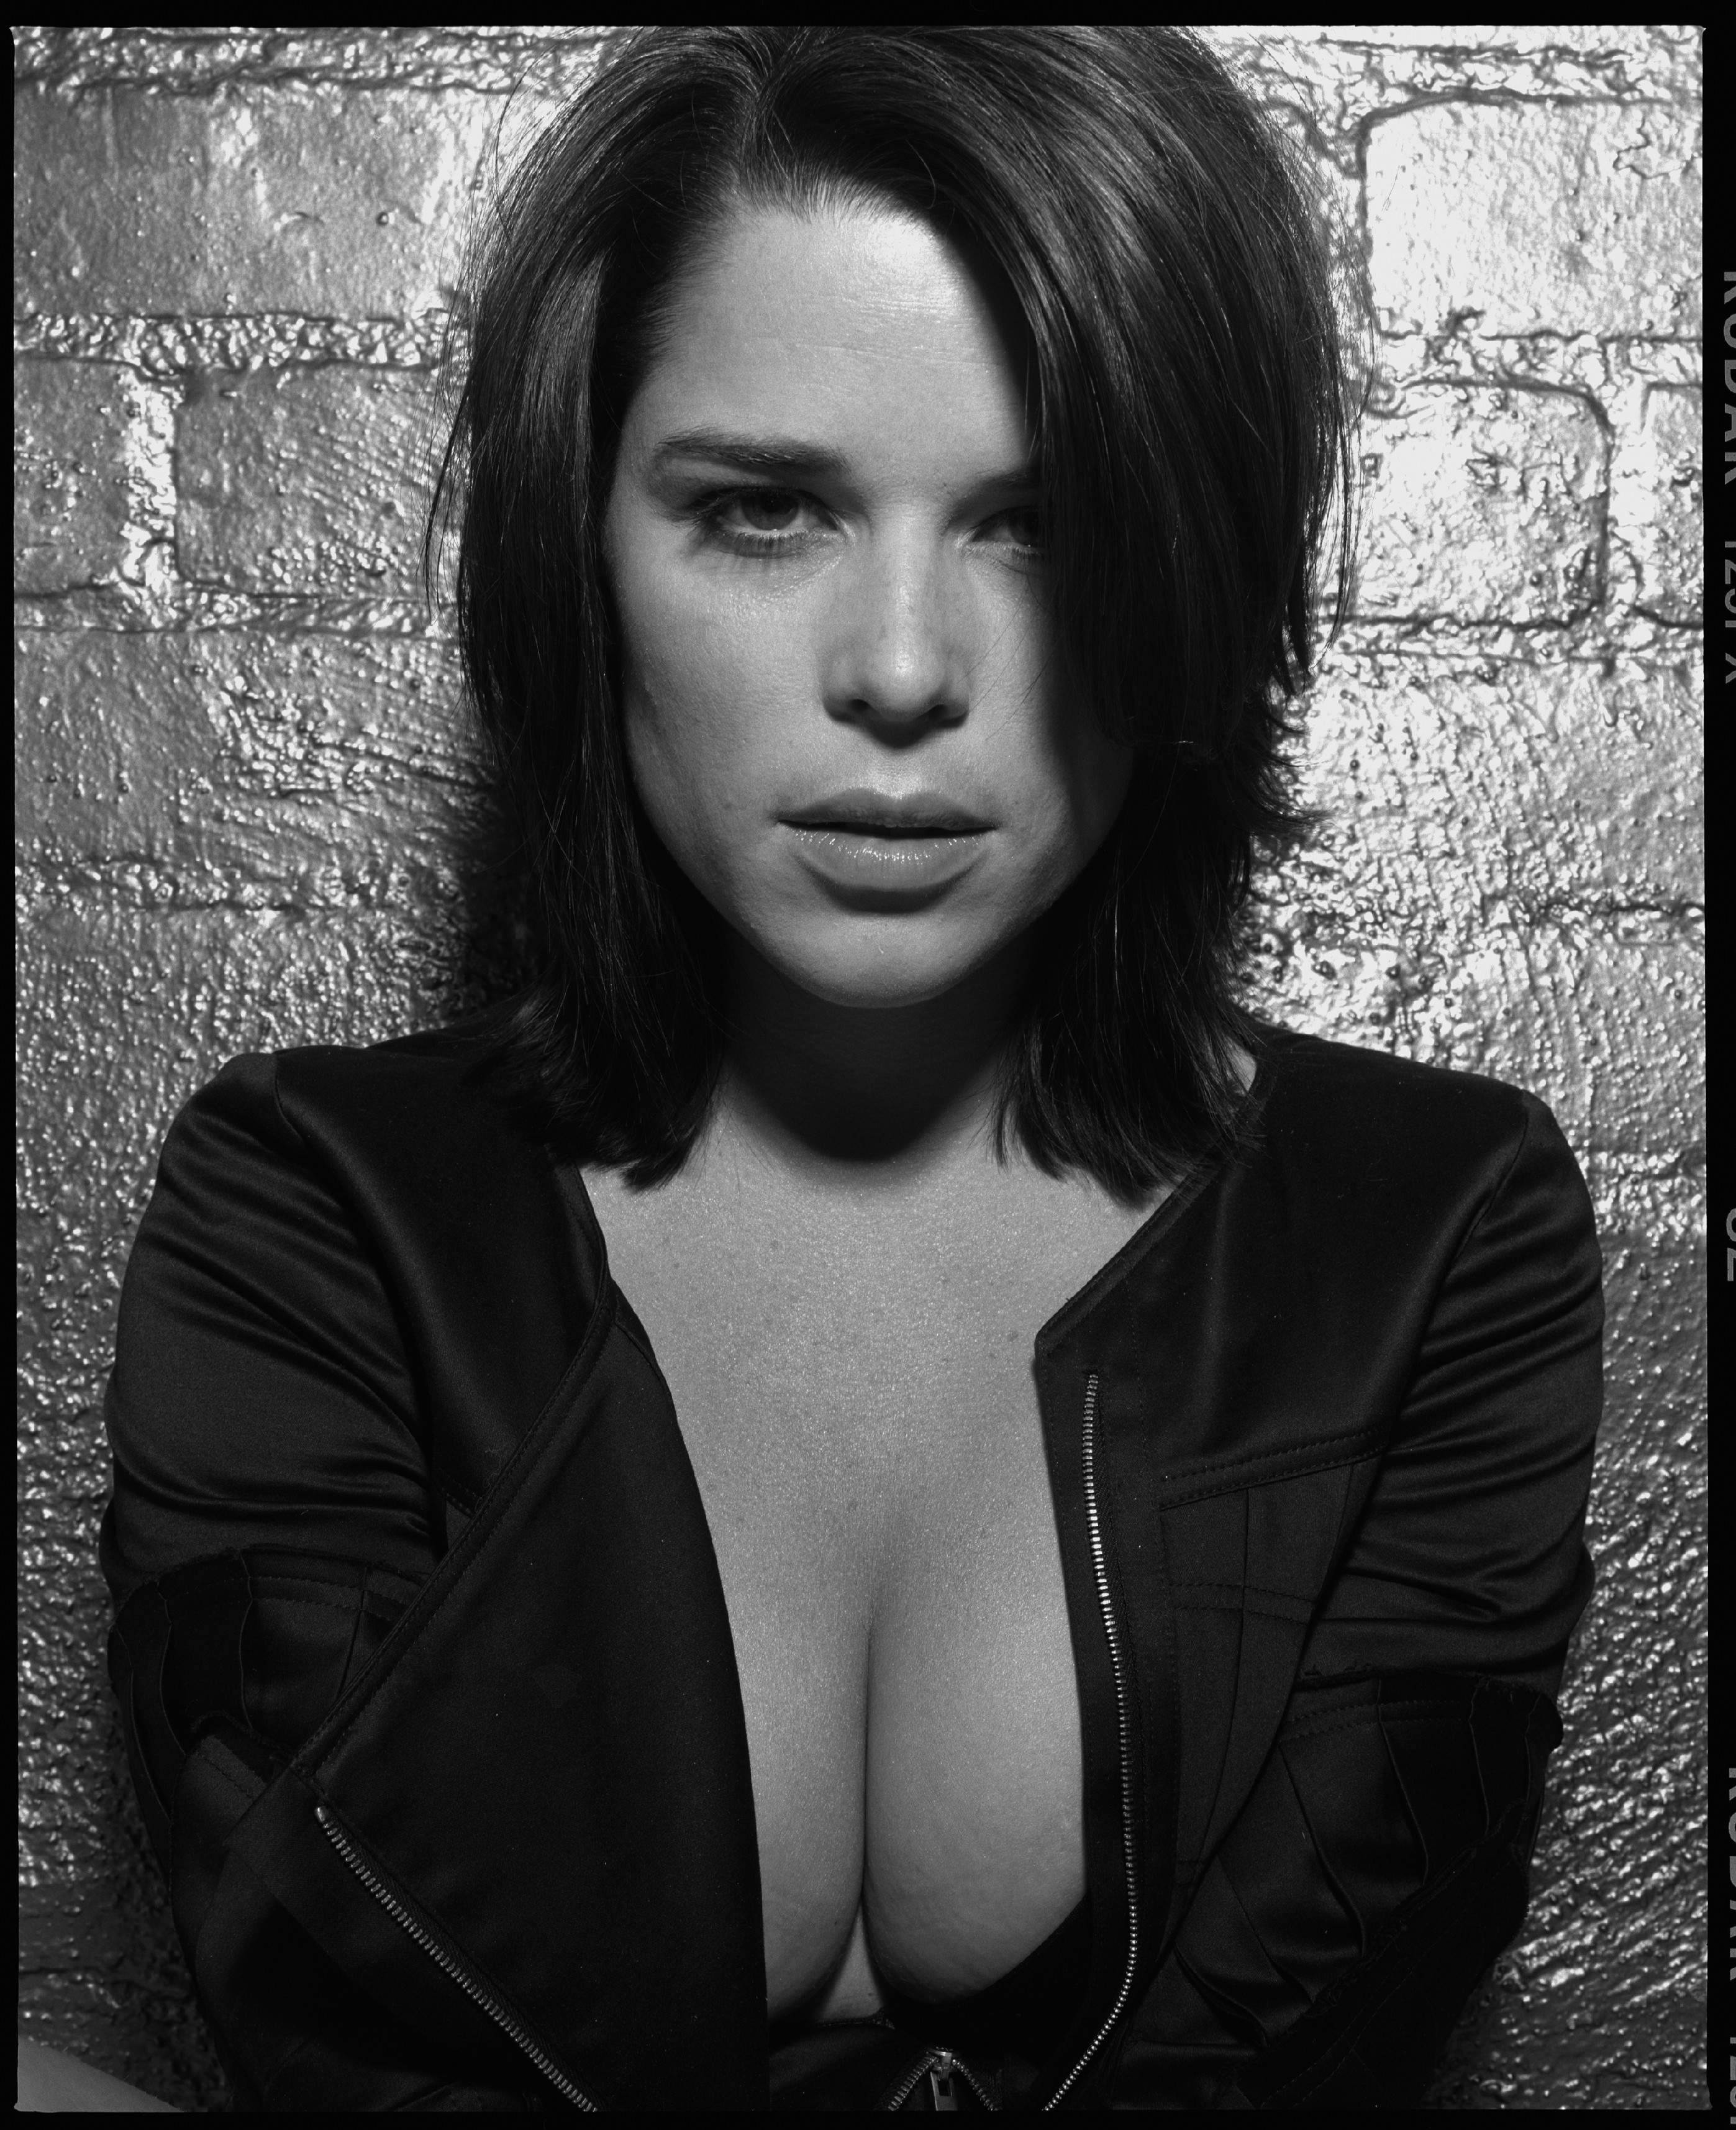 cosmo black leather sofa at costco digitalminx.com - actresses neve campbell